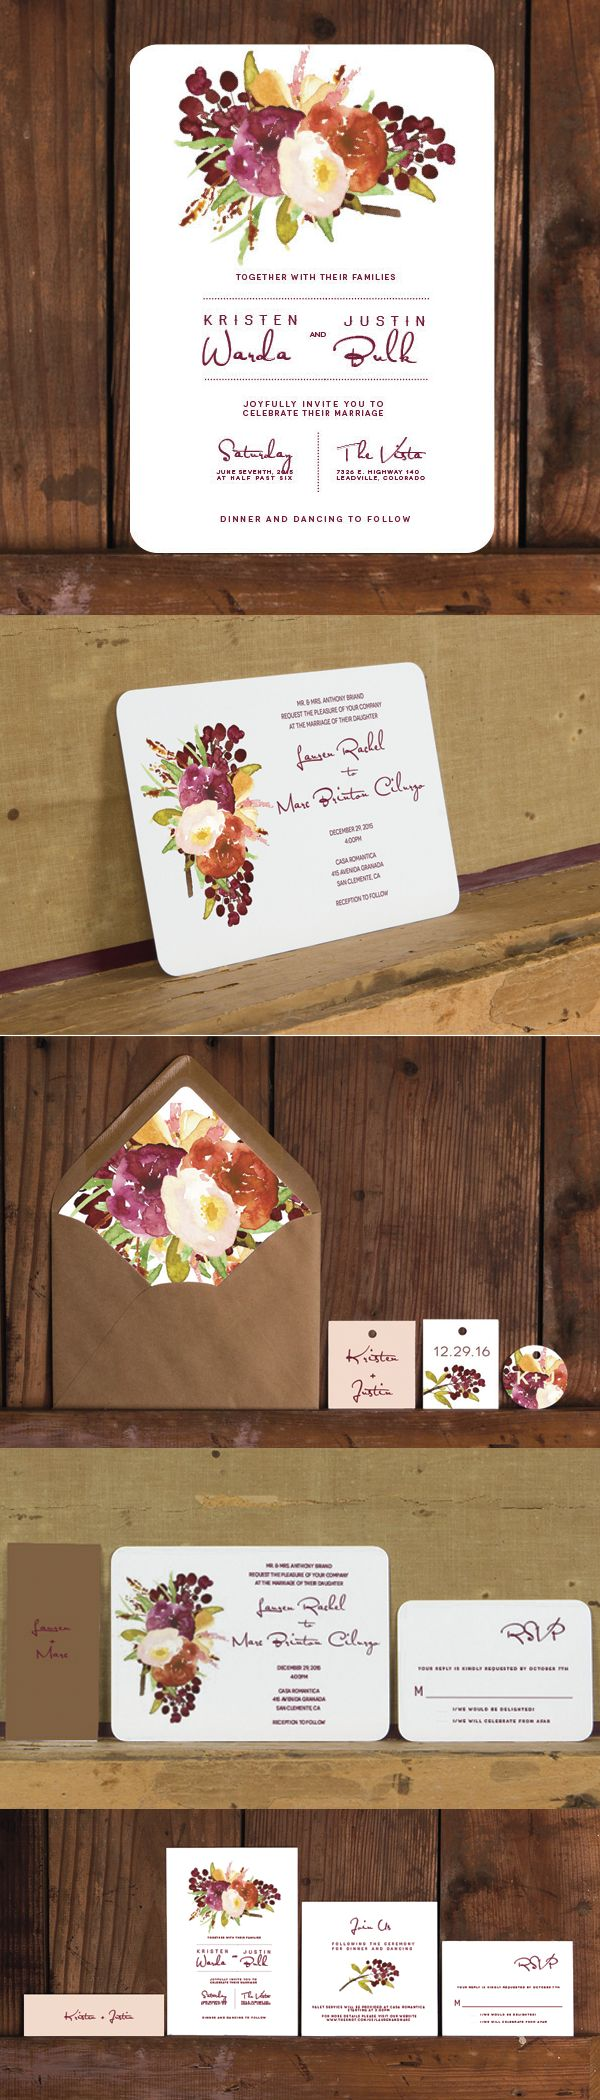 Love the deep reds and blush colors on this rustic wedding invitation.  The big question is which layout do you like best?